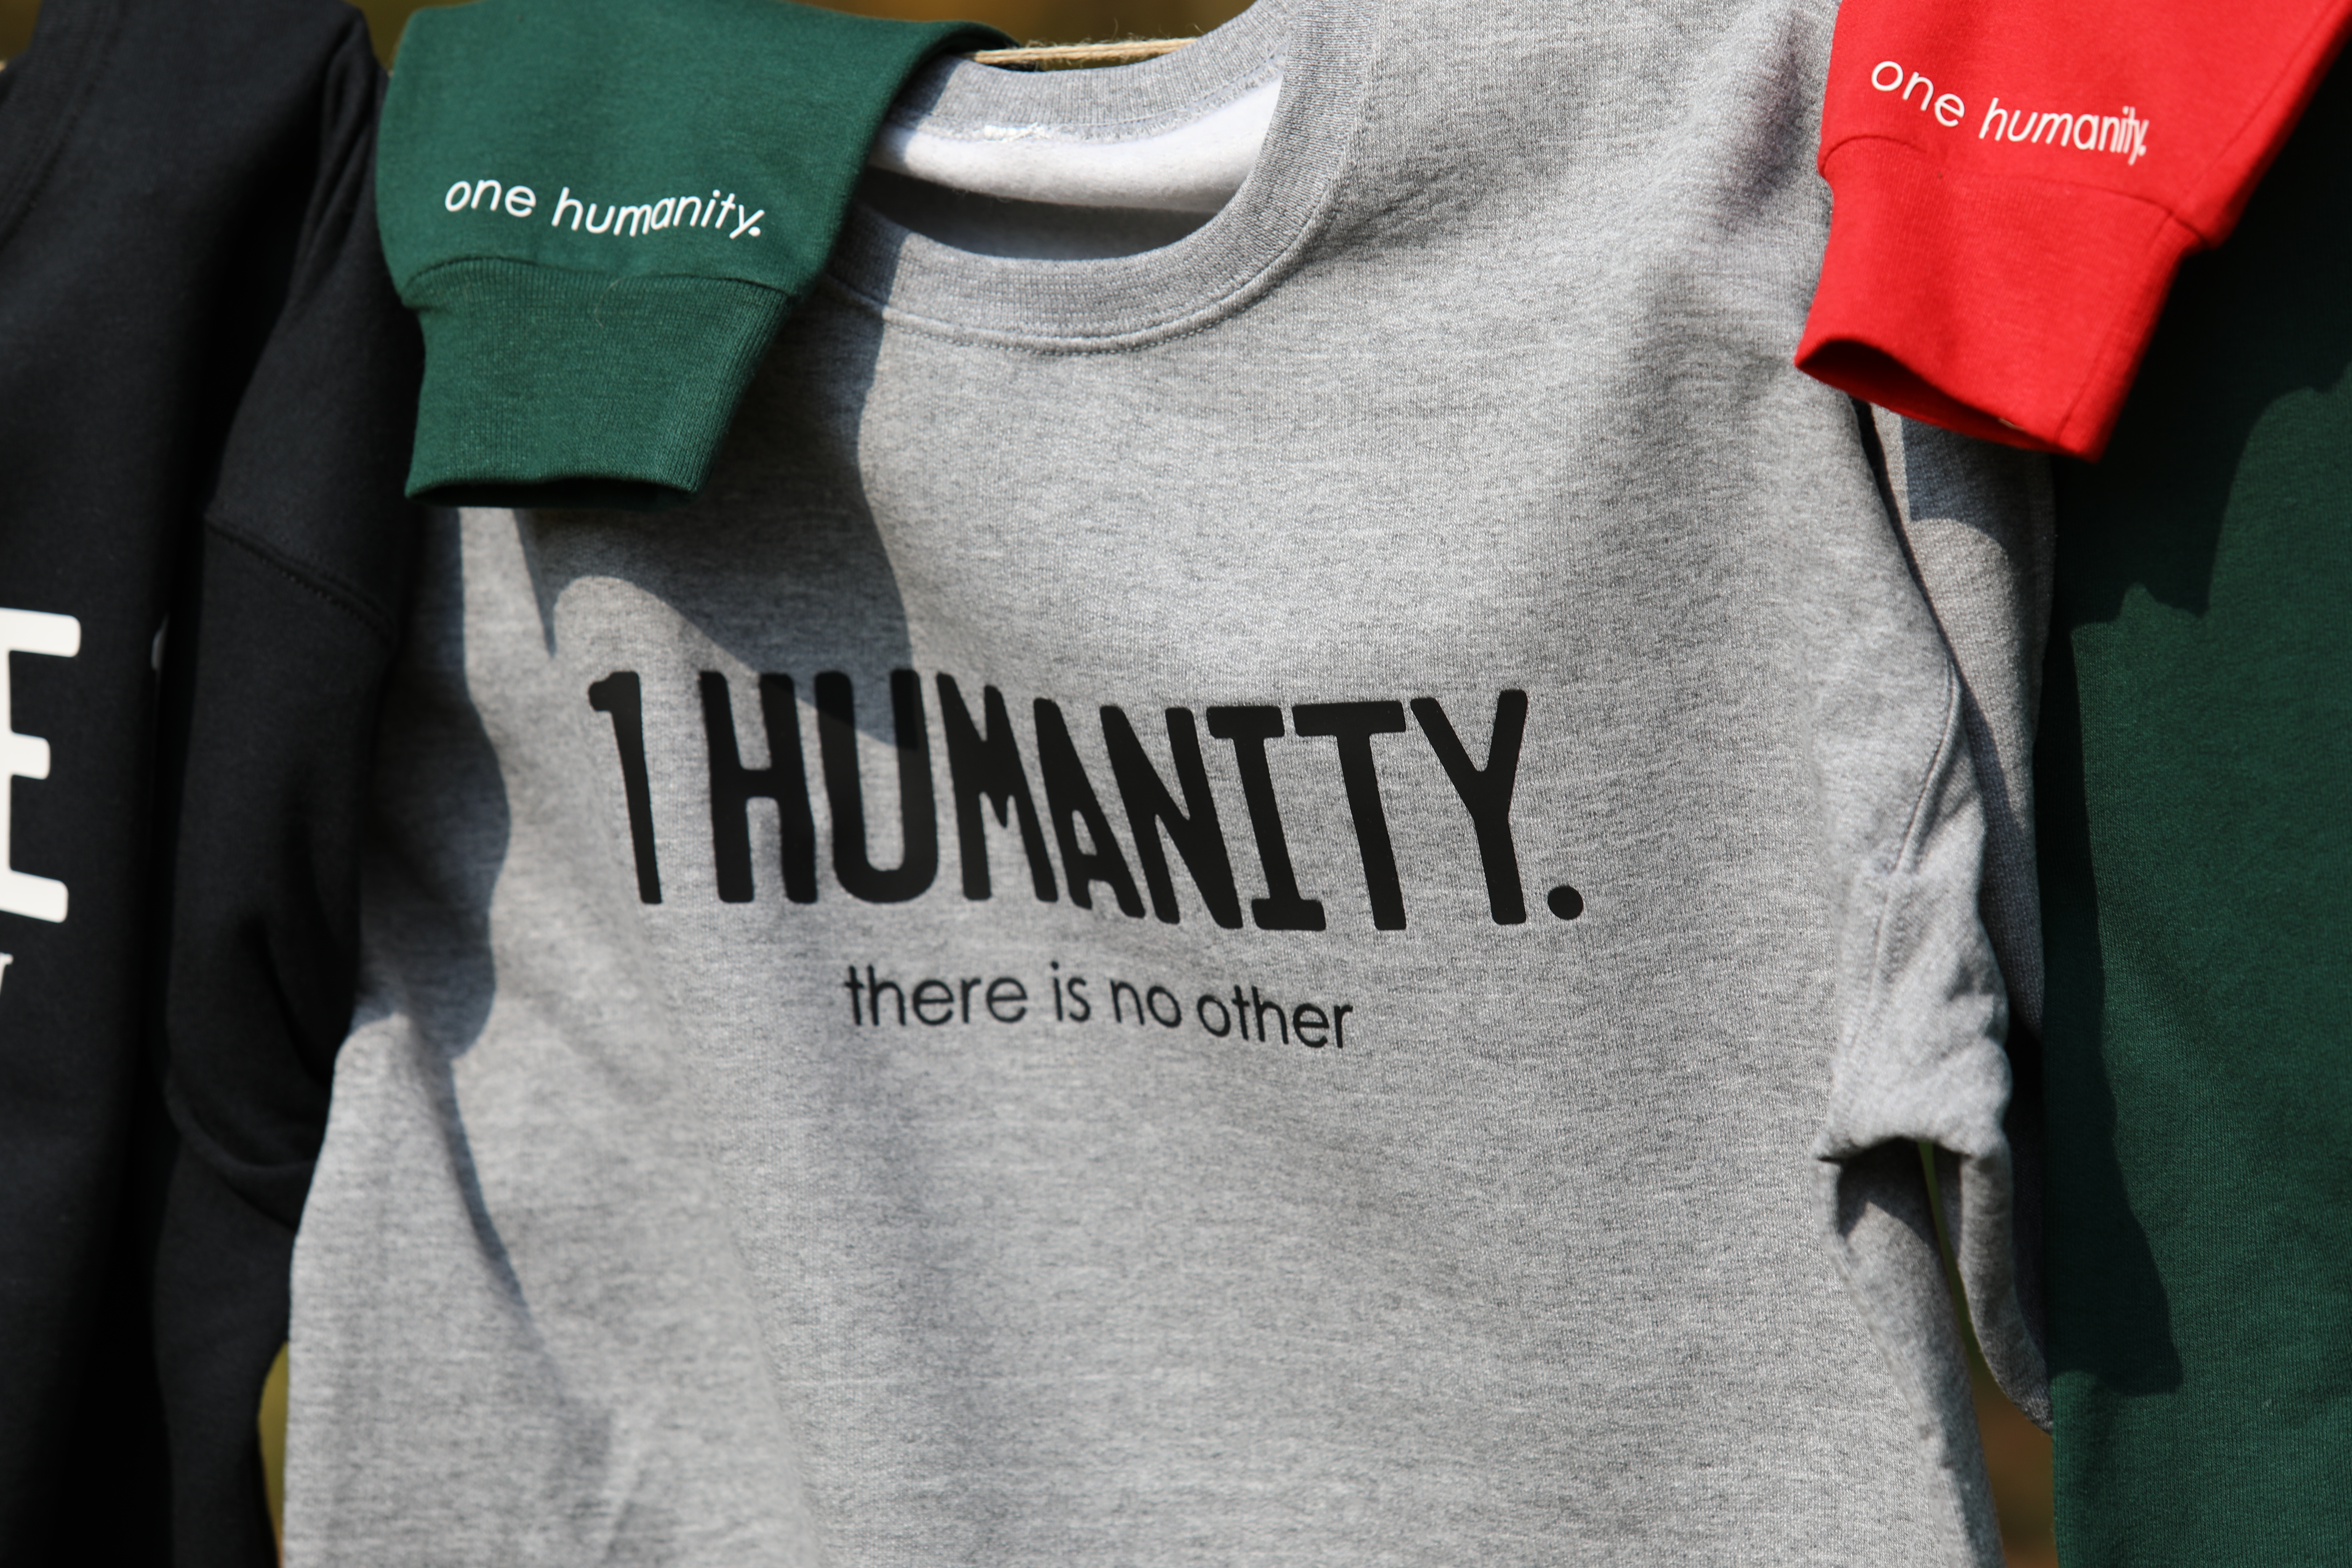 We Are One Humanity